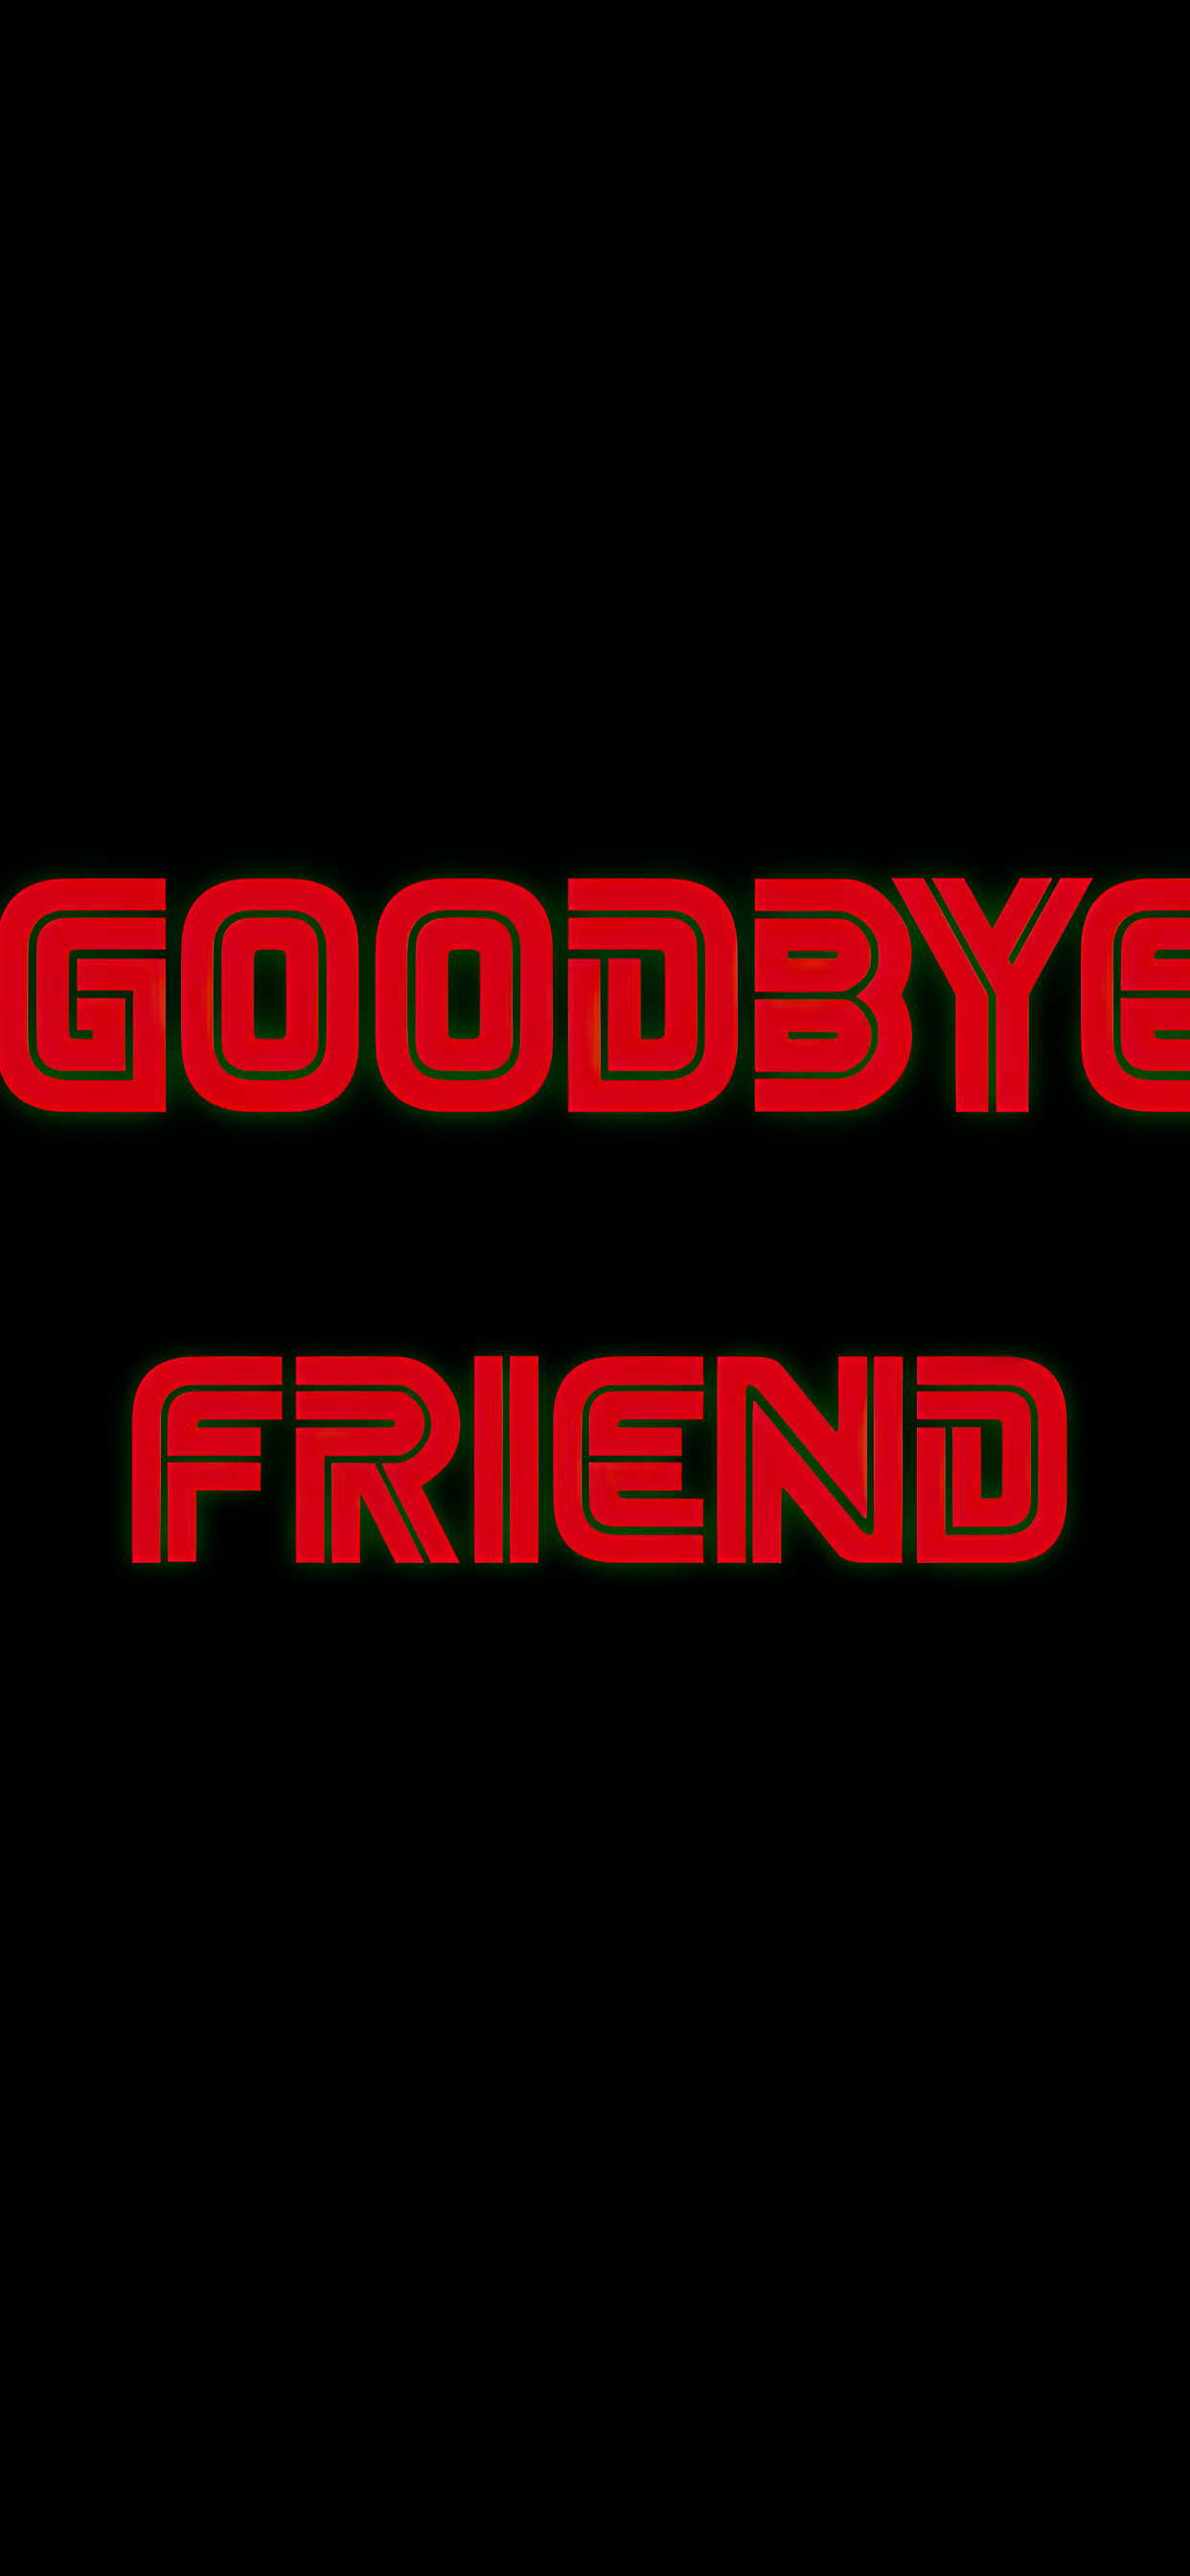 goodbye-friend-mr-robot-typography-4k-f0.jpg